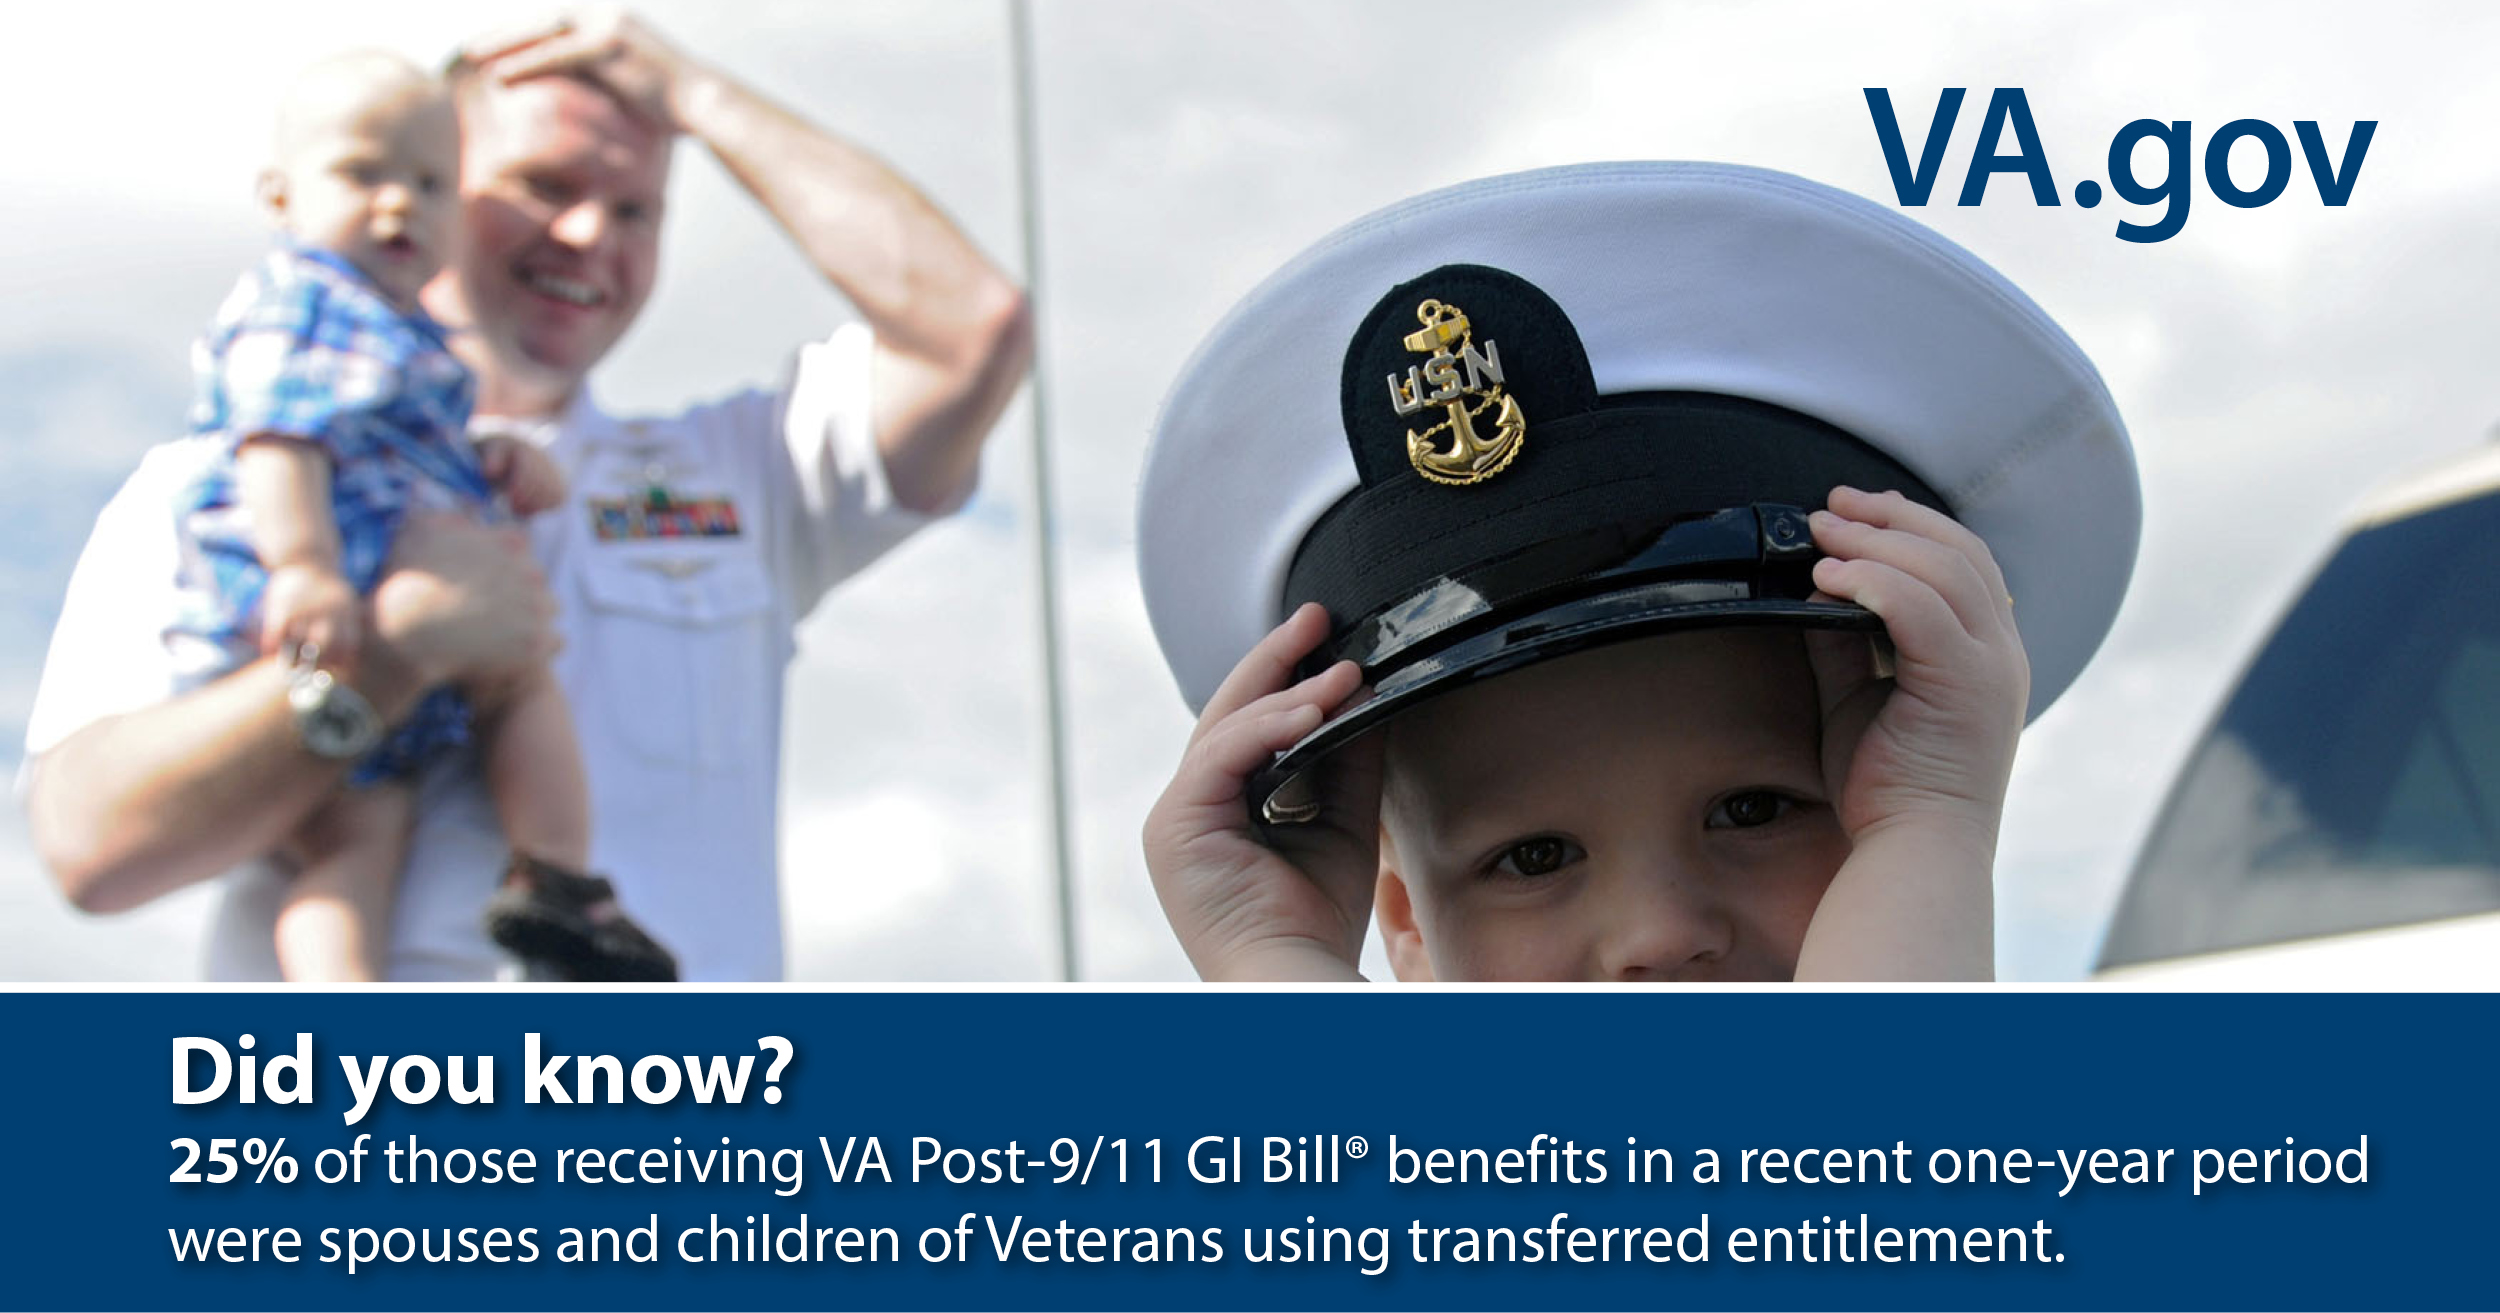 Did you know? 25% of those receiving VA Post-9/11 GI Bill benefits in a recent on-year period were spouses and children of Veterans using transferred entitlement.